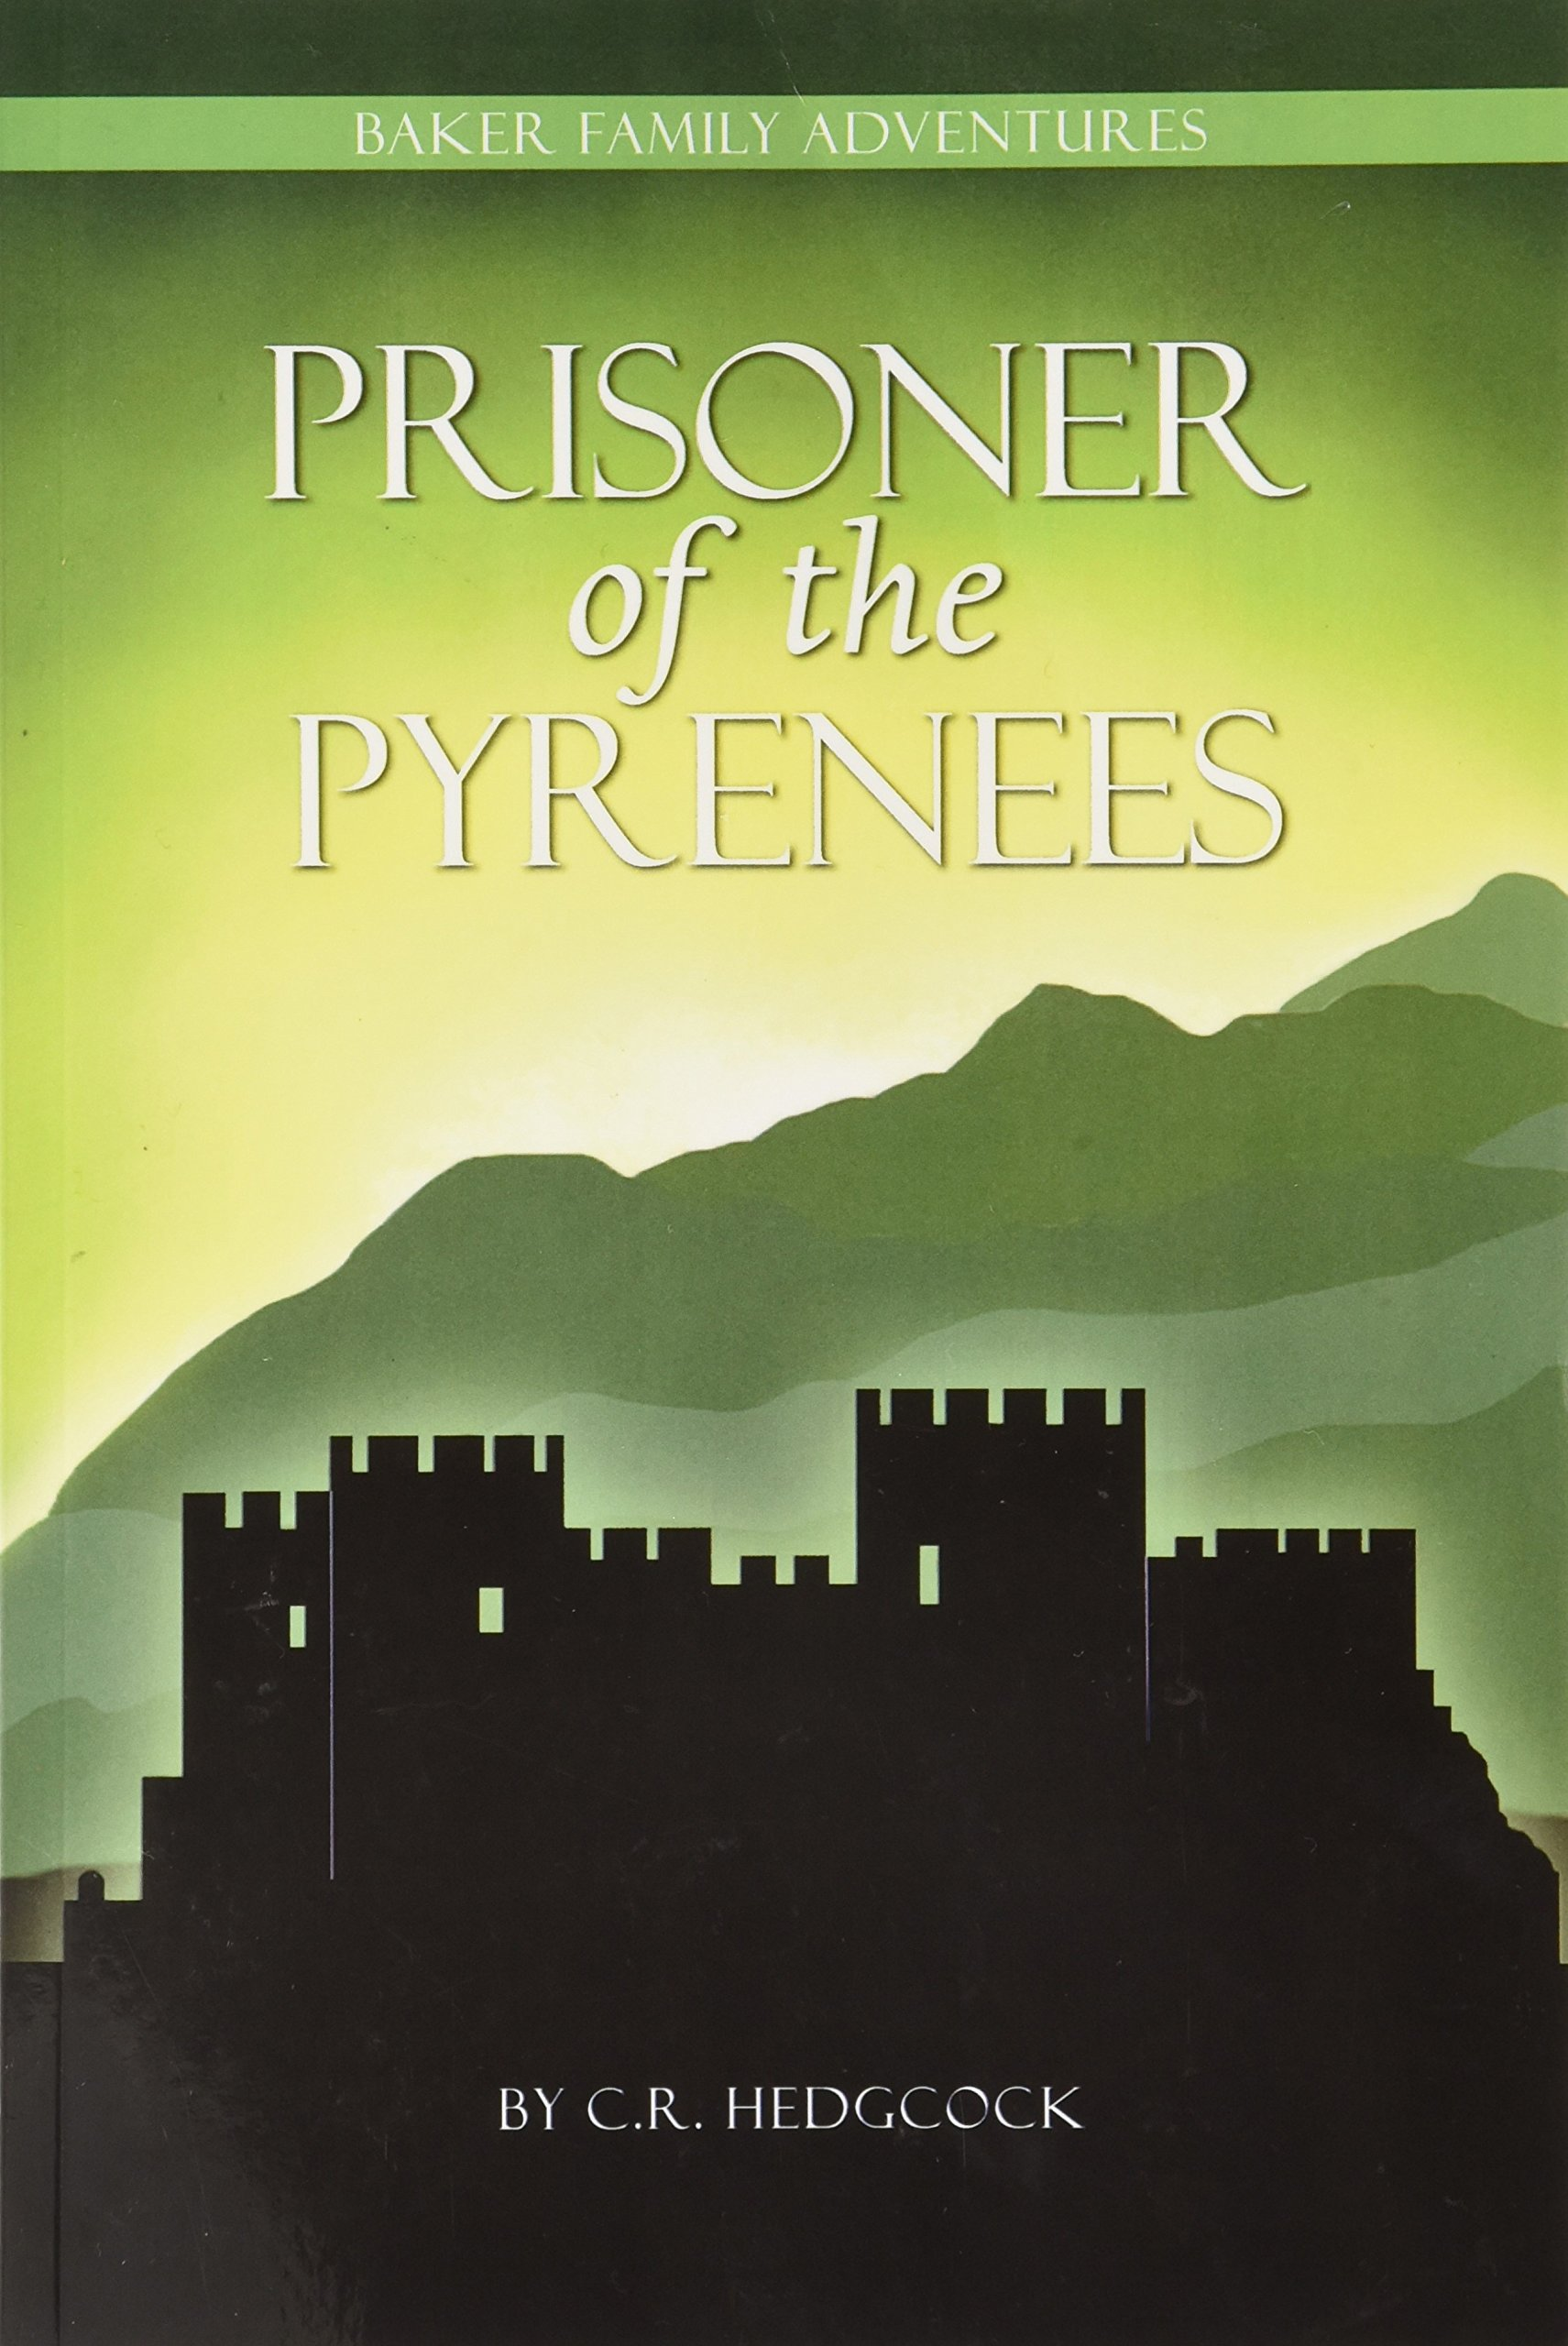 Image result for Prisoner of the pyrenees by c.r. hedgcock